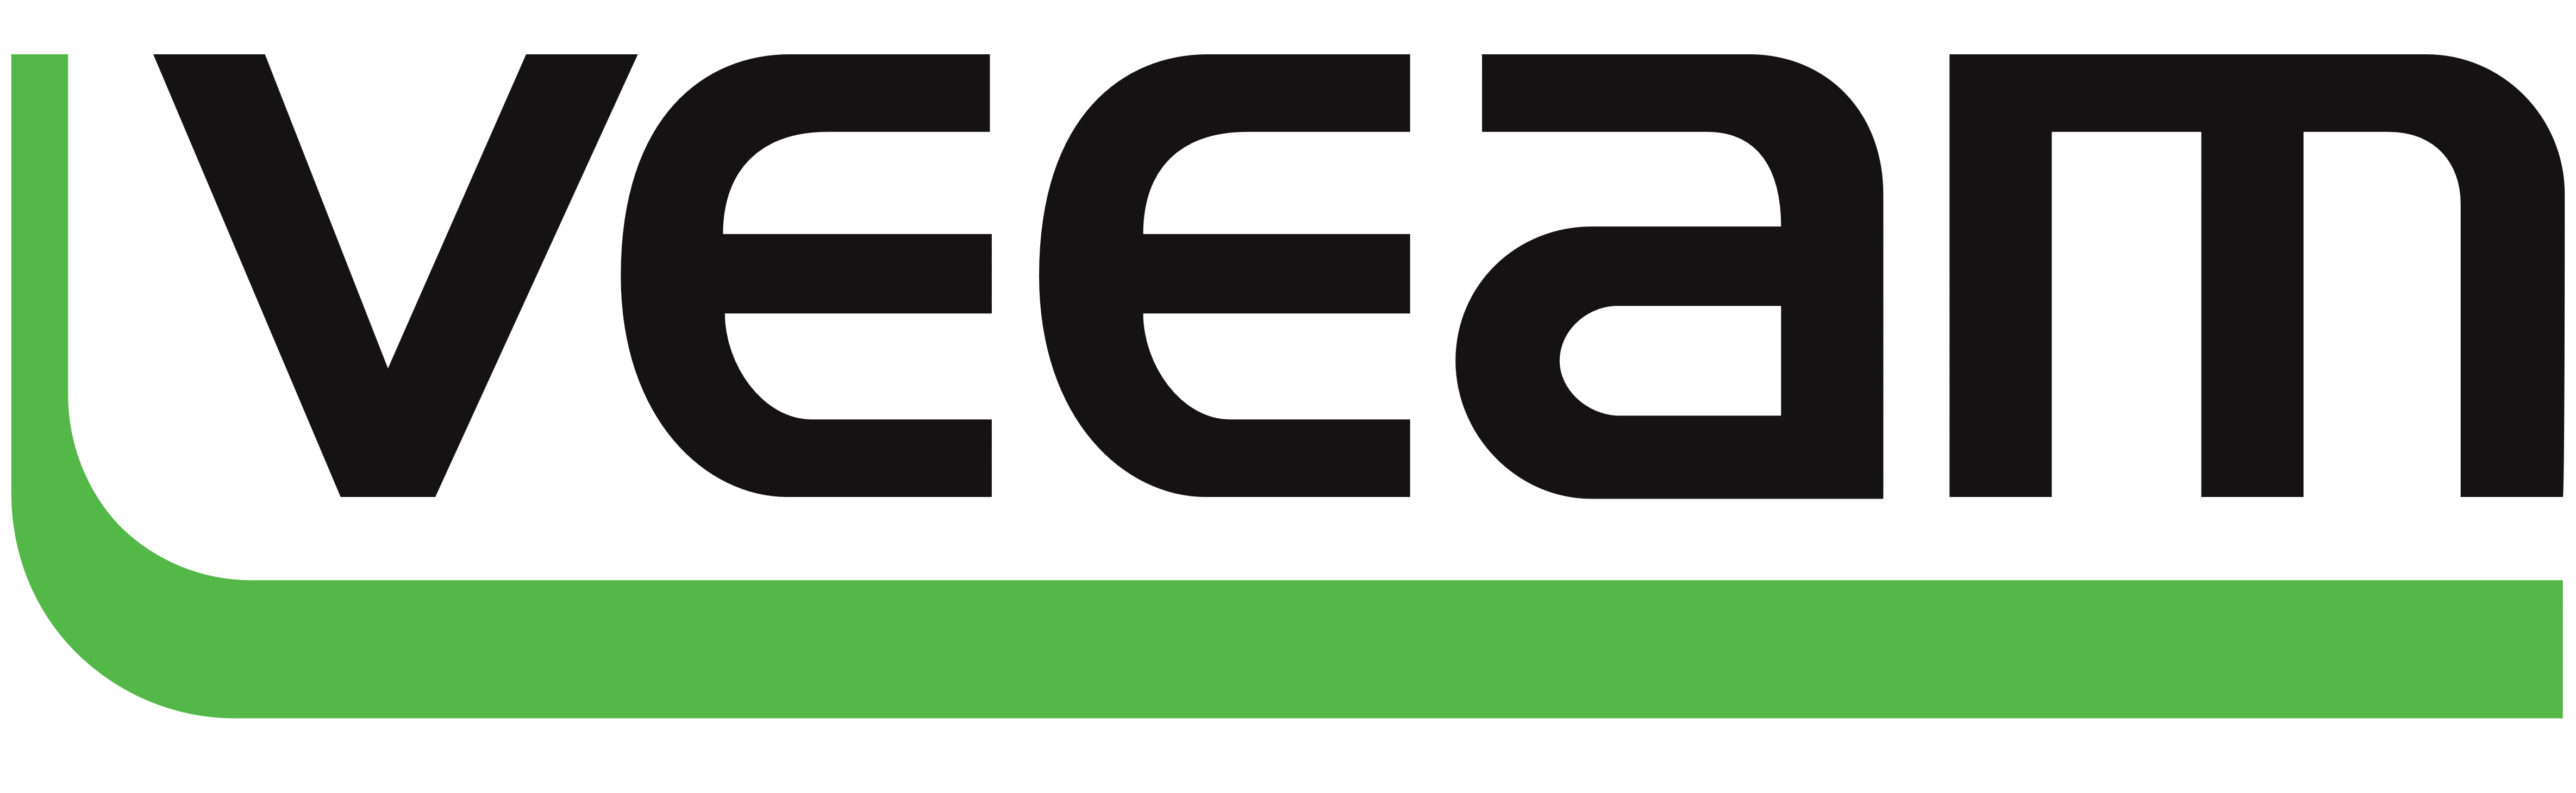 Veeam Software – Logos Download